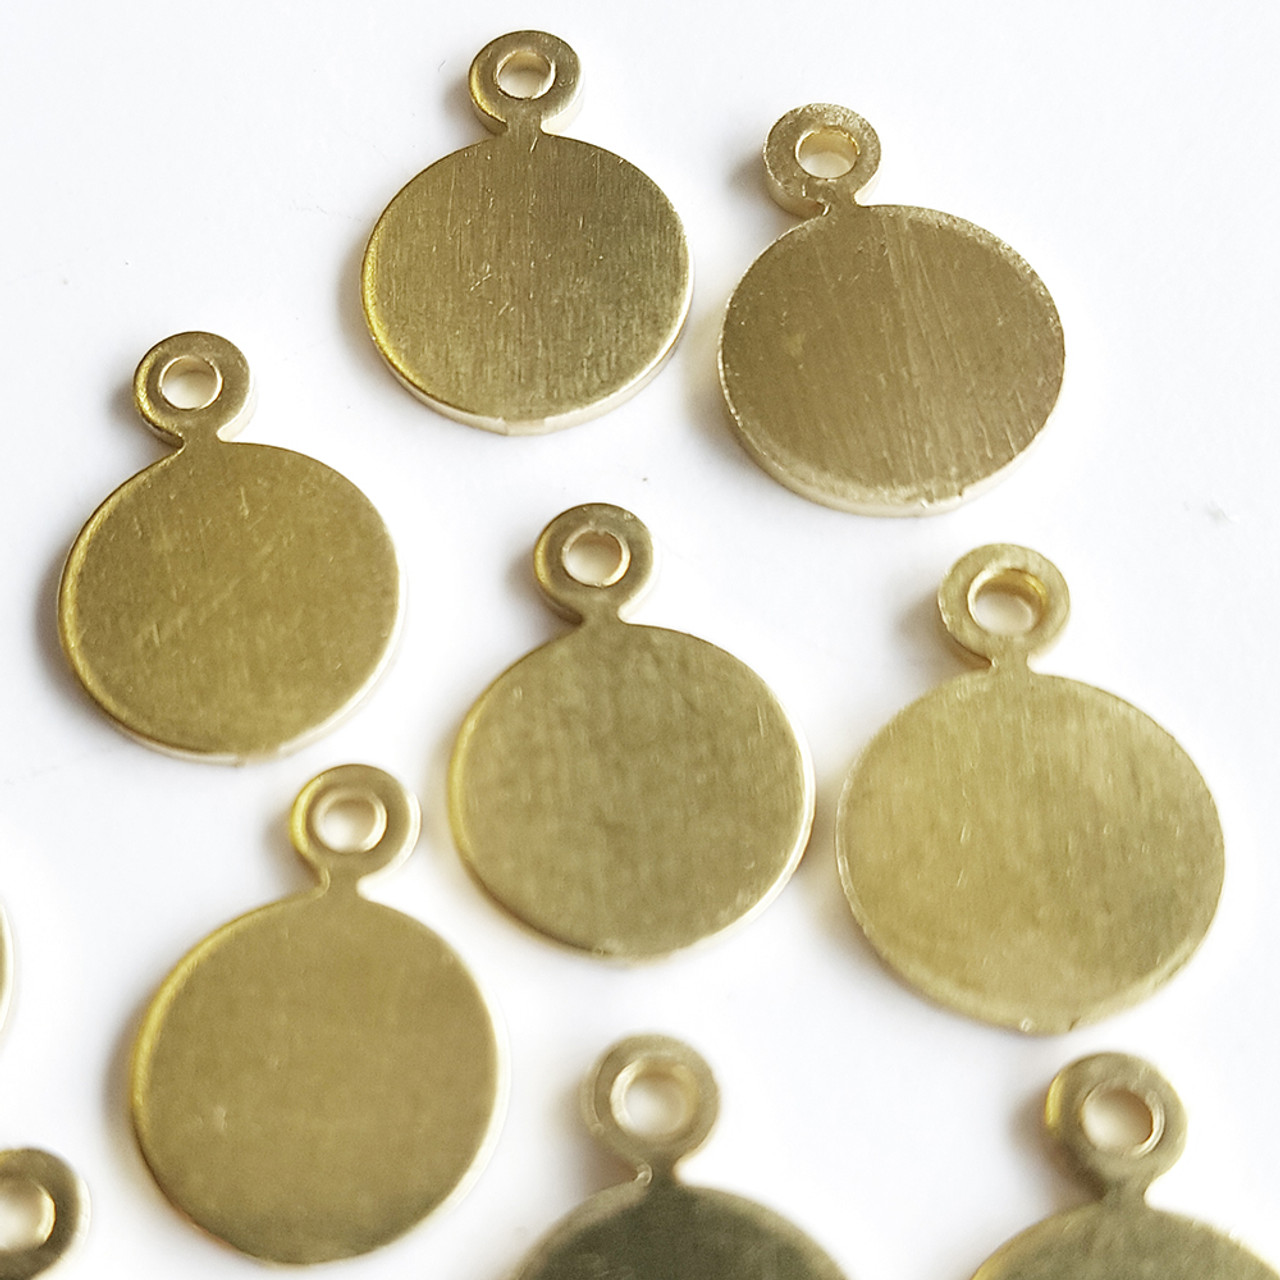 Brass tag for jewellery making and other crafts